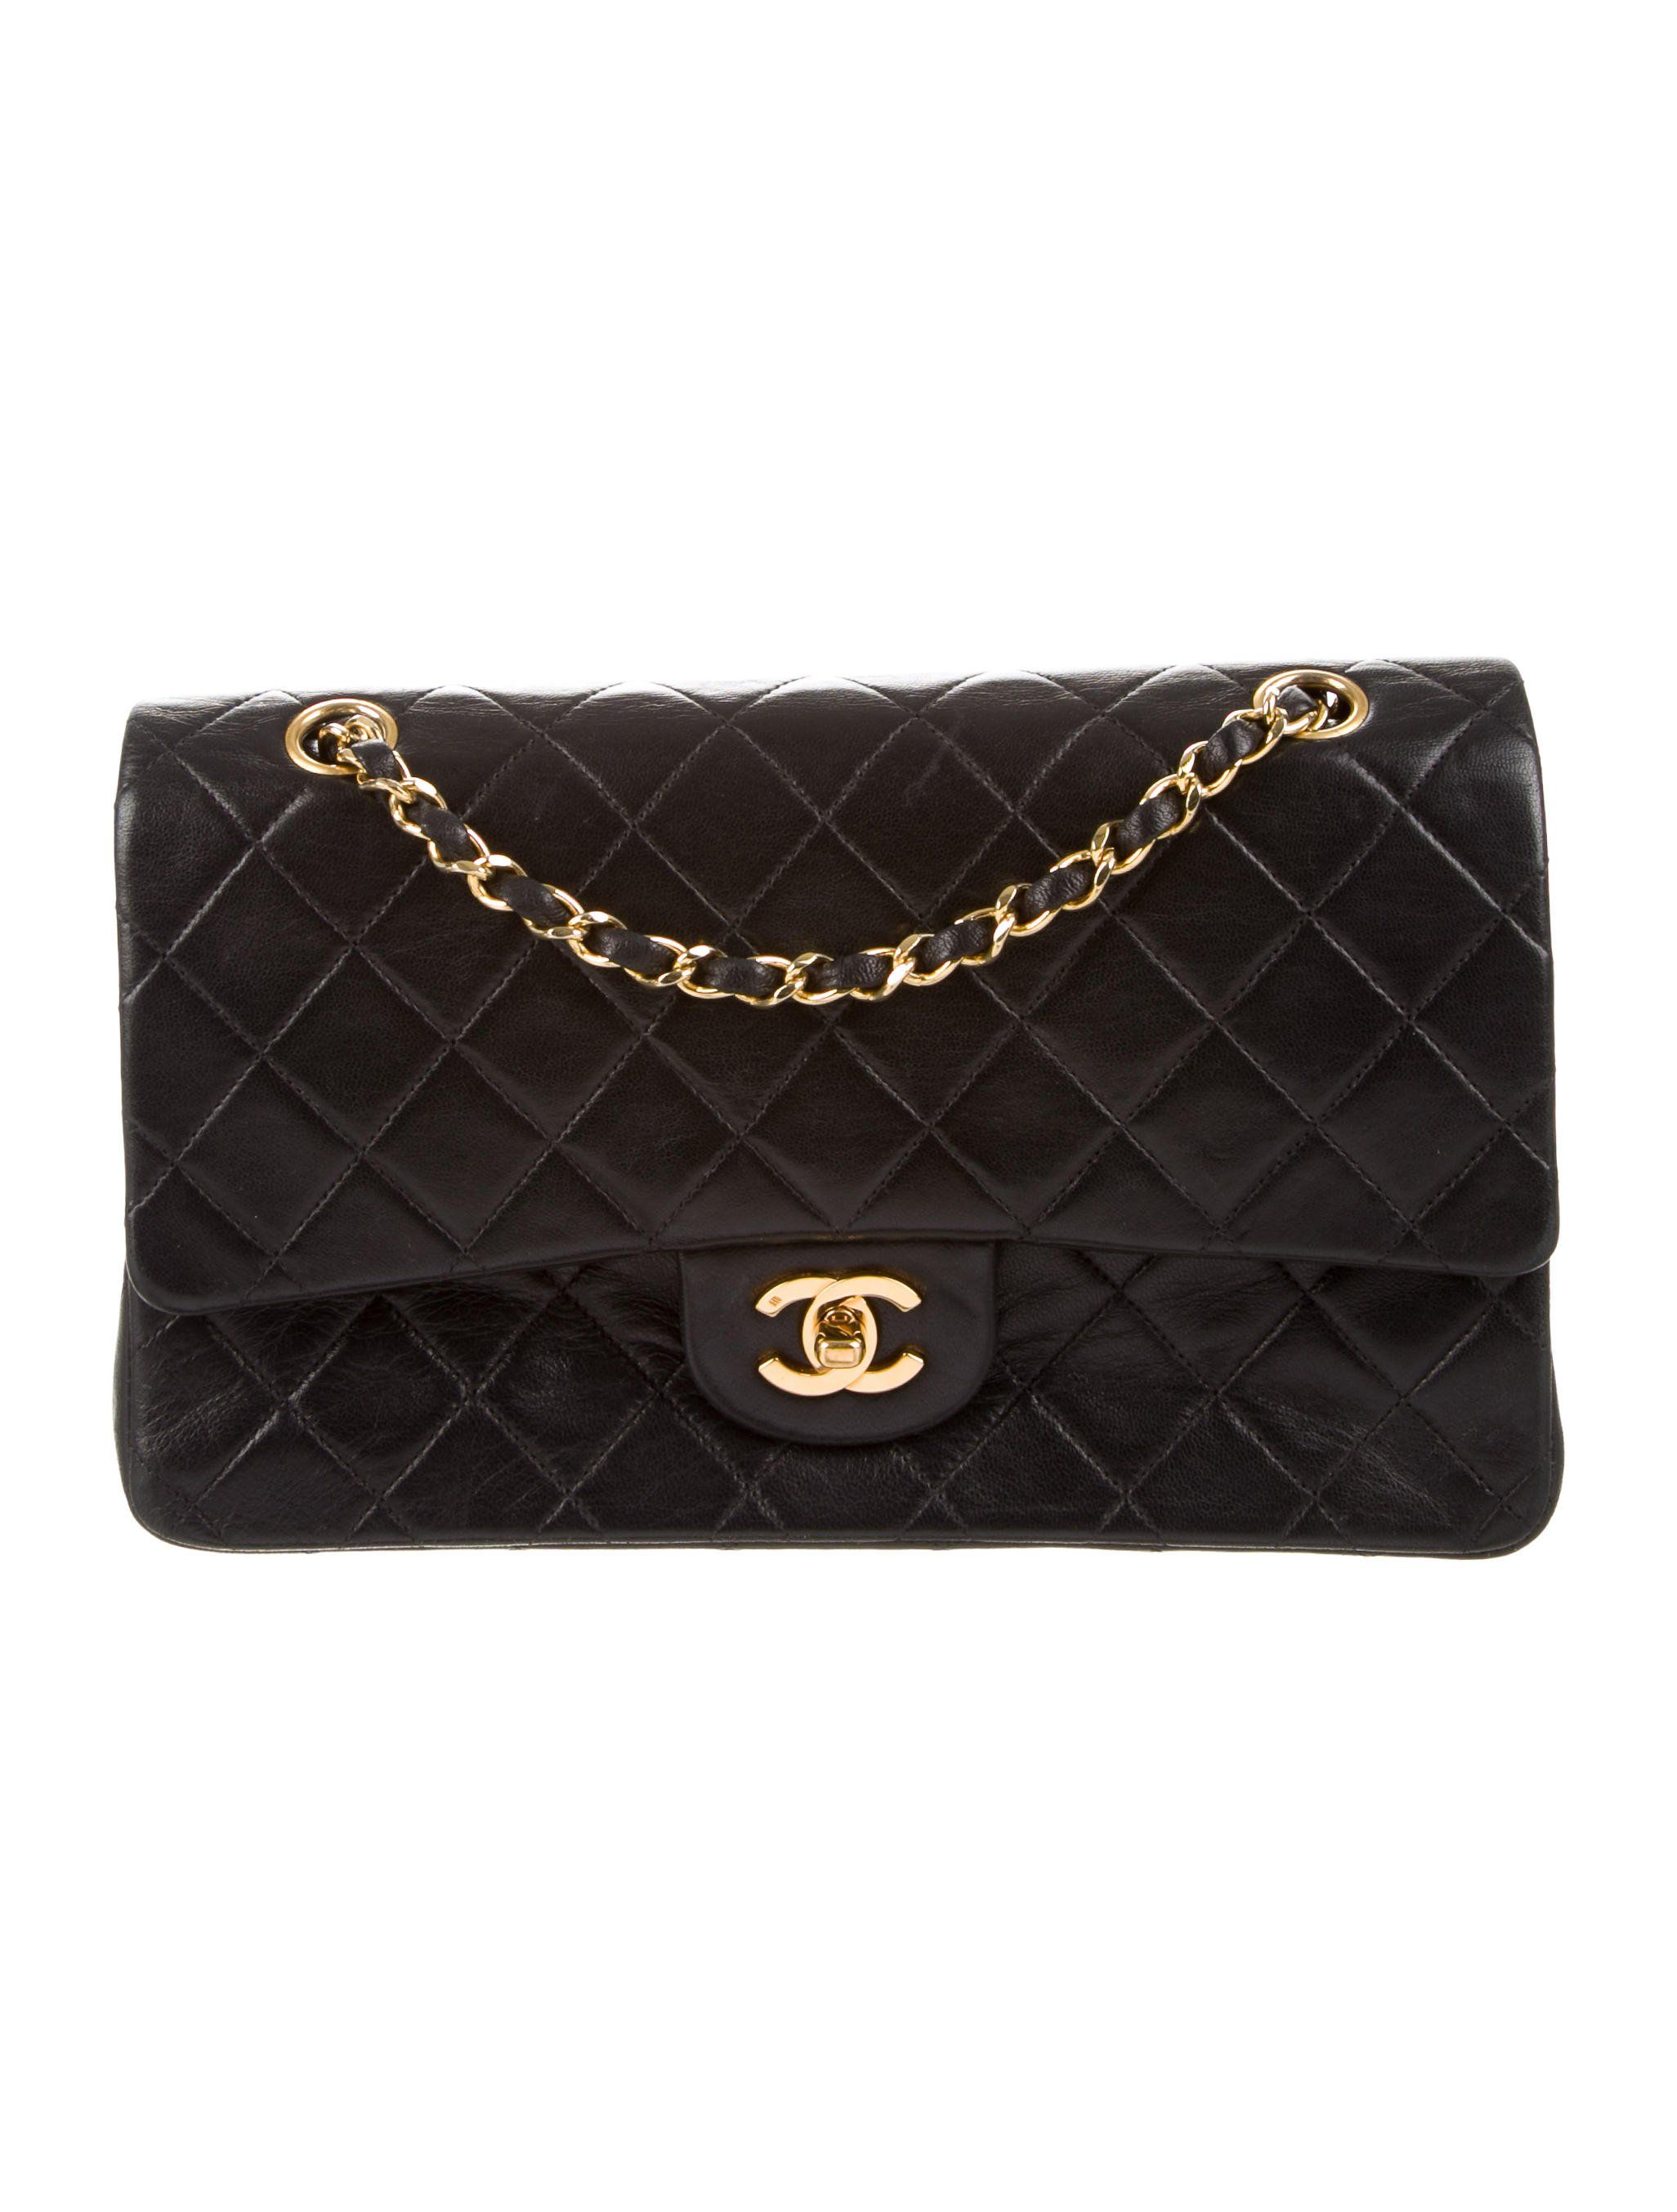 565cdb803ff0 Black quilted lambskin vintage Chanel Classic Medium Double Flap Bag with  gold-tone hardware